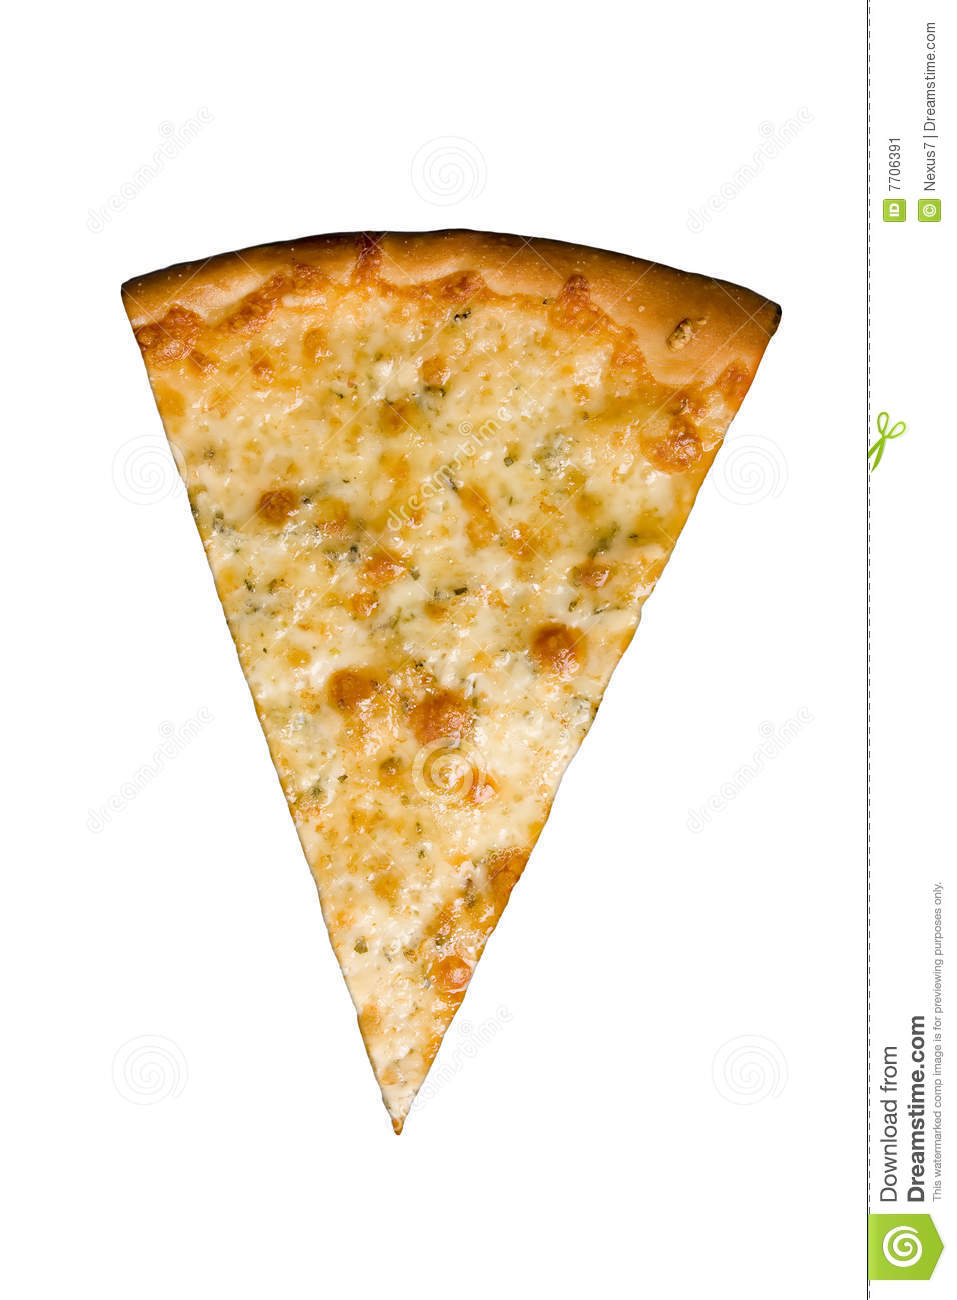 Slice Of Pizza Stock Image - Image: 7706391